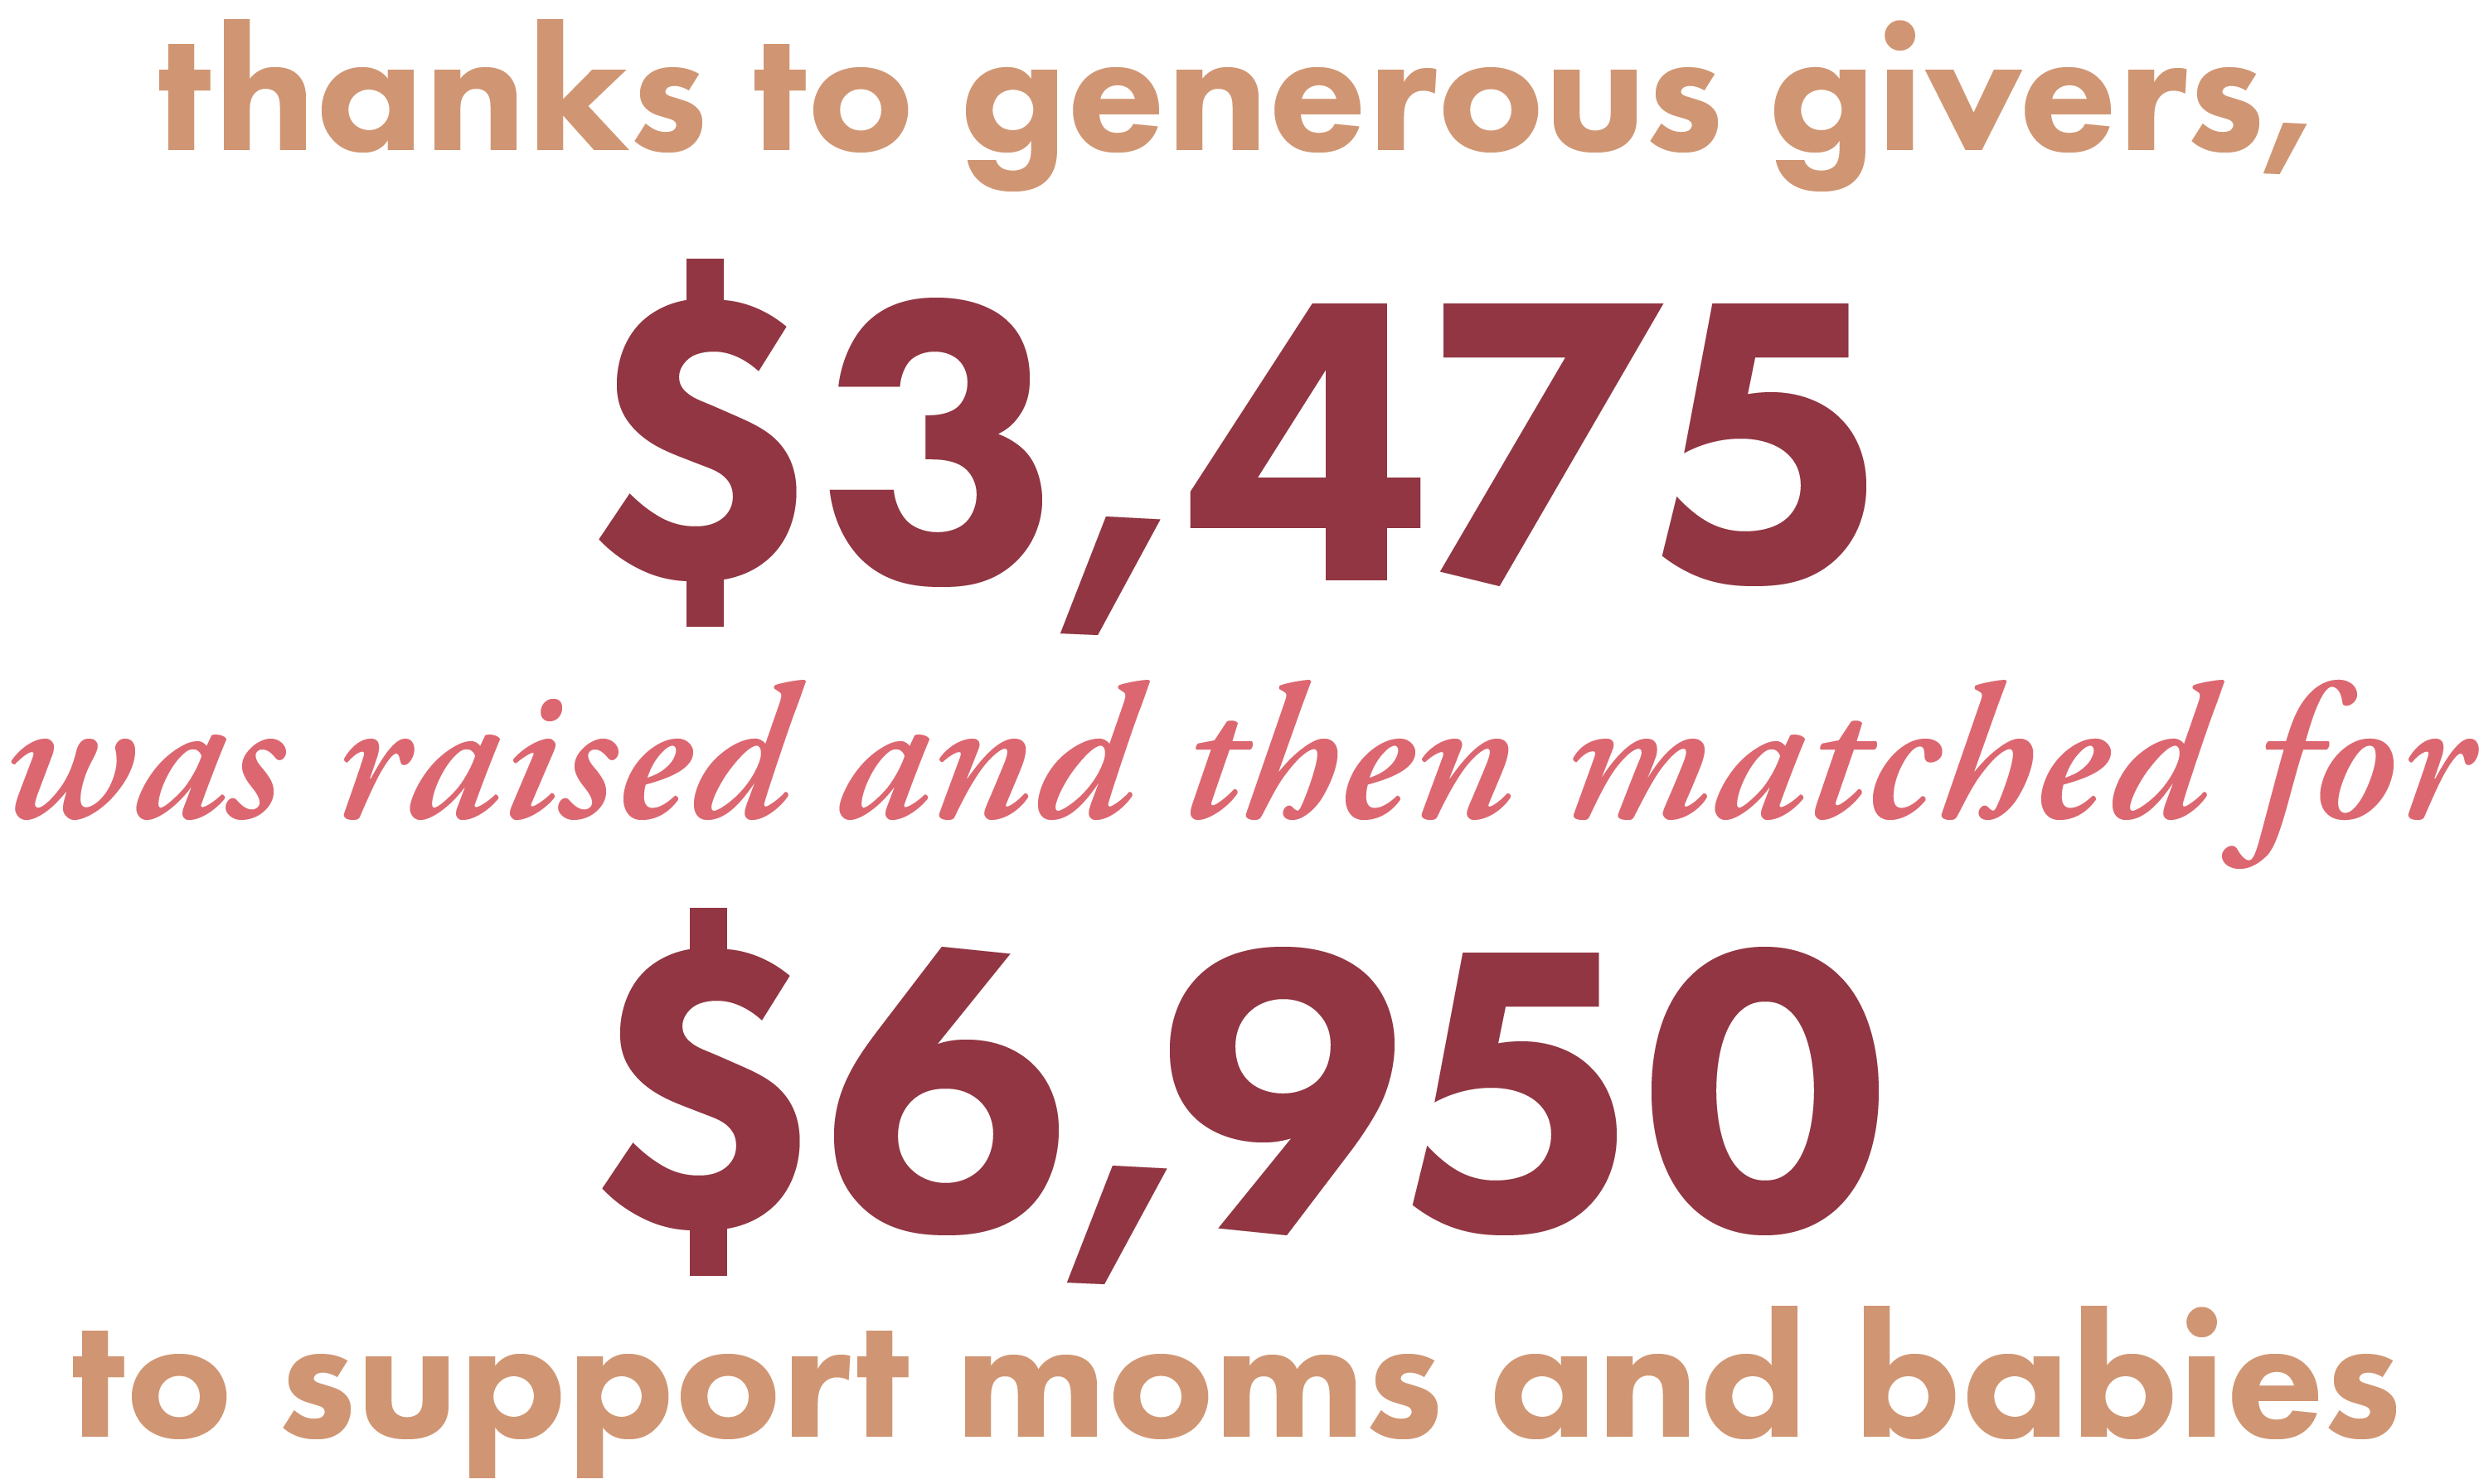 Thanks to generous givers, $3,475 was raised and then matched for $6,950 to support moms and babies.